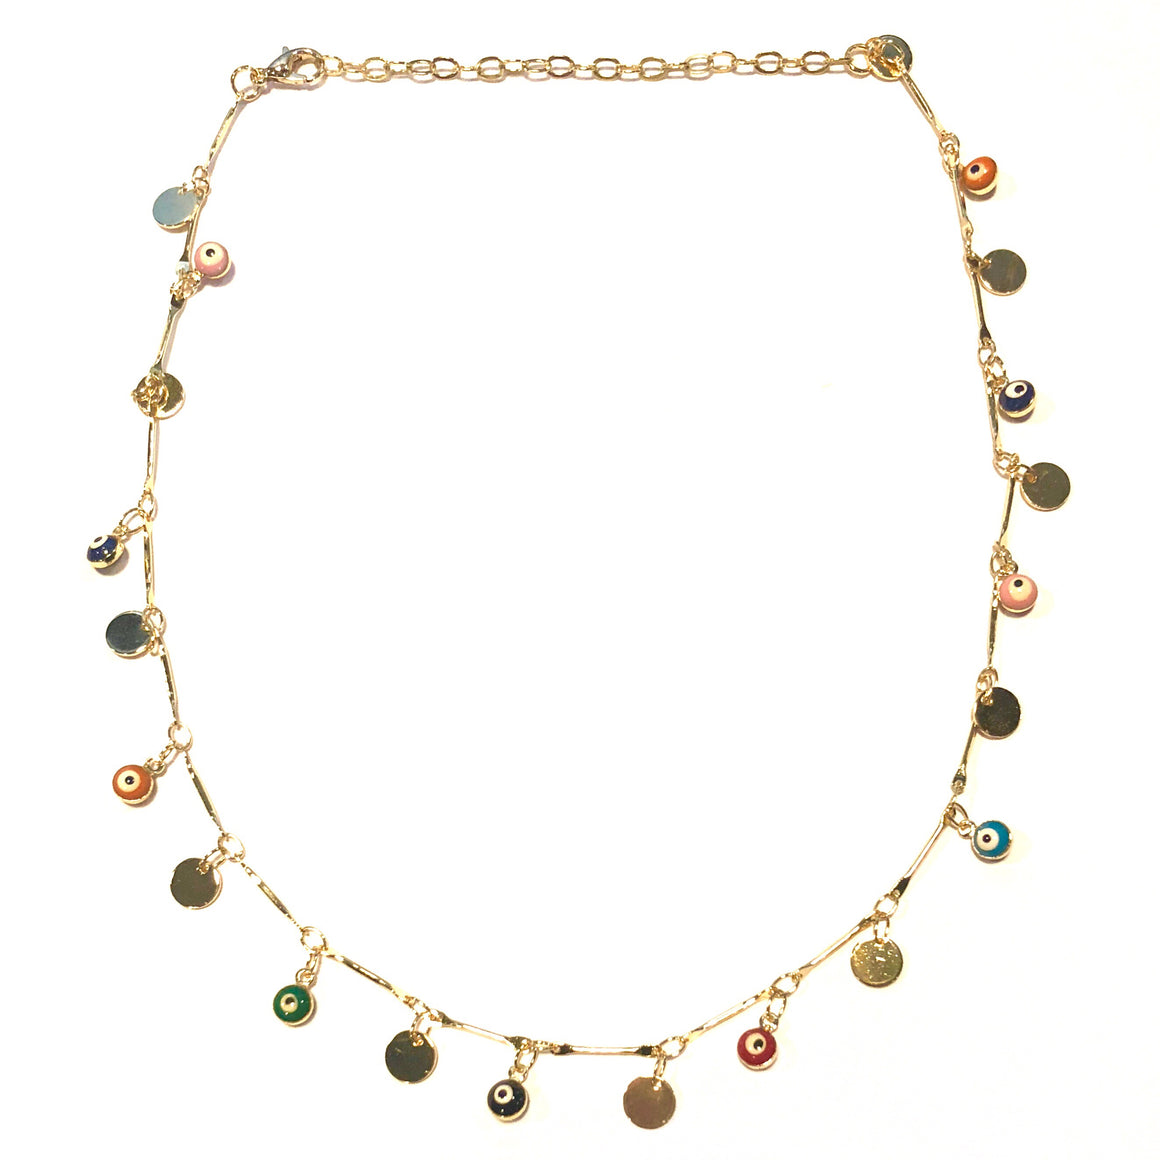 Evil Eye Disc Choker Necklace - Nikki Smith Designs